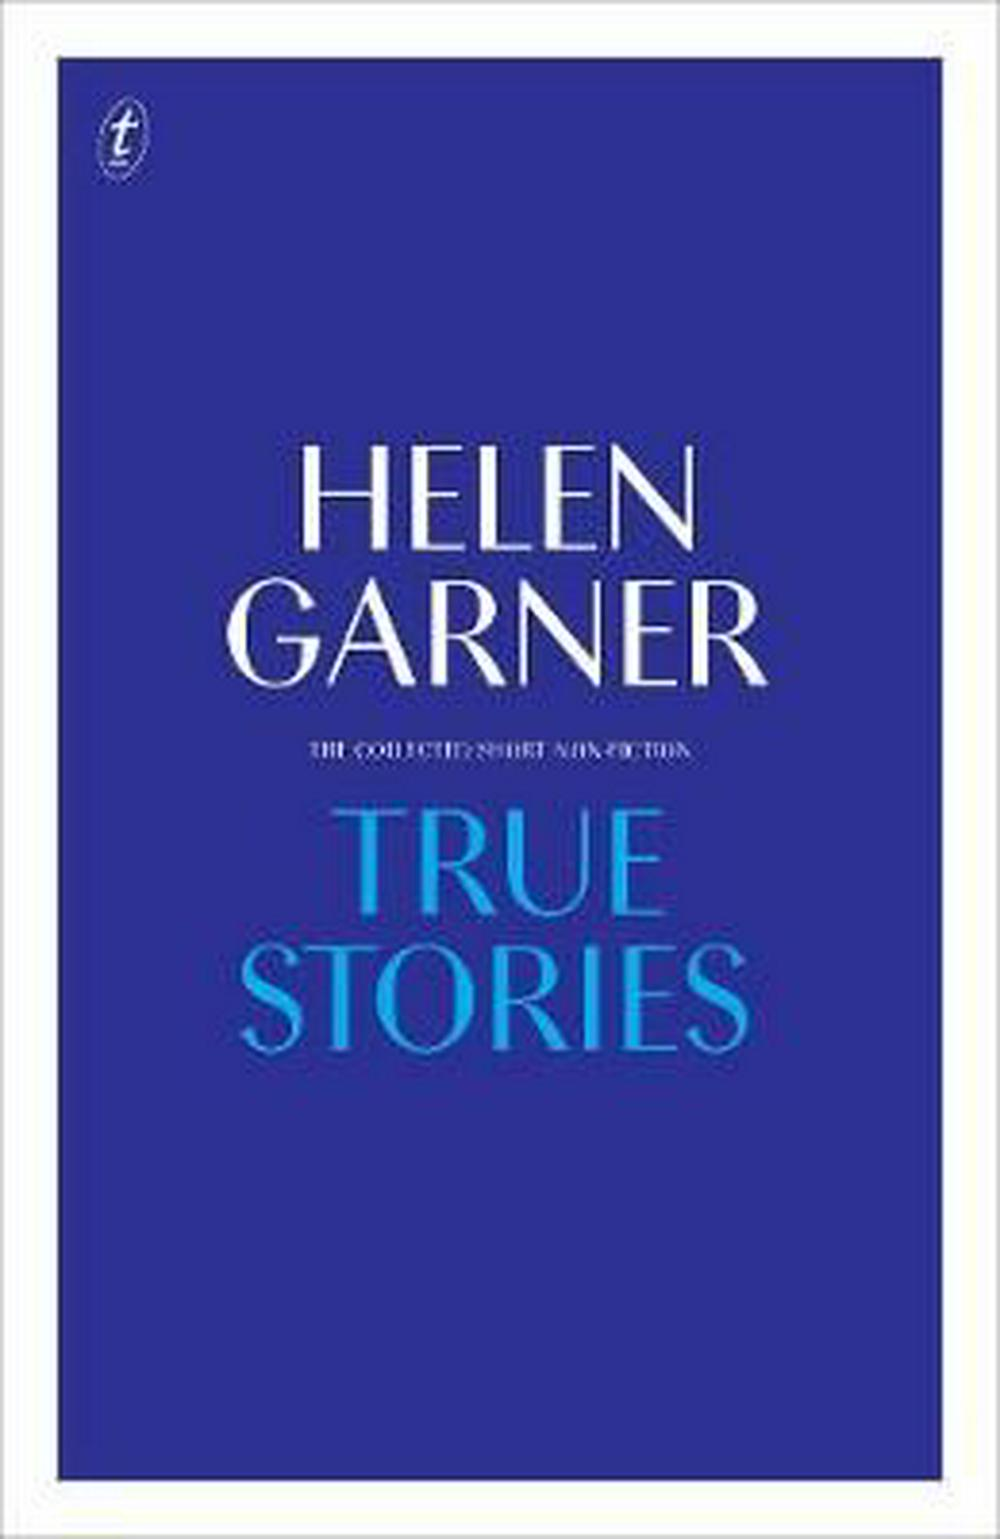 True StoriesThe Collected Short Non-Fiction